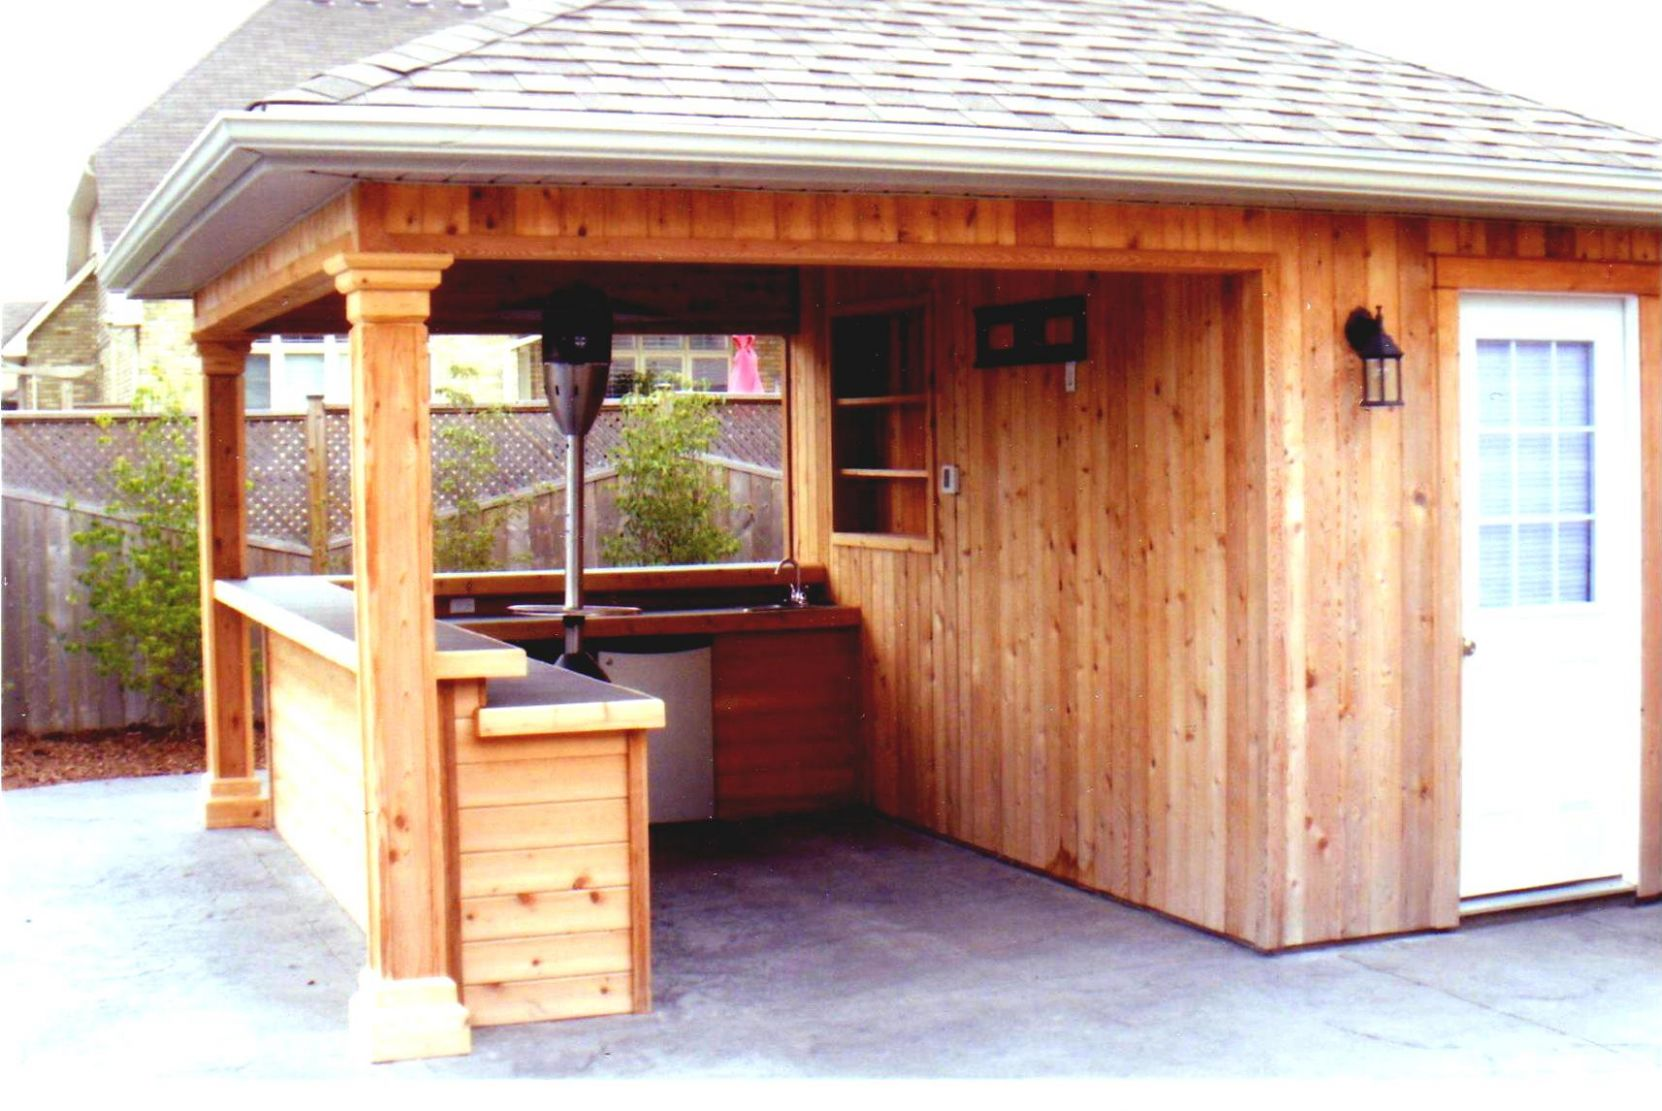 Patio Backyard Small Pool Living Home Tiki Bar Outdoor Hut ..